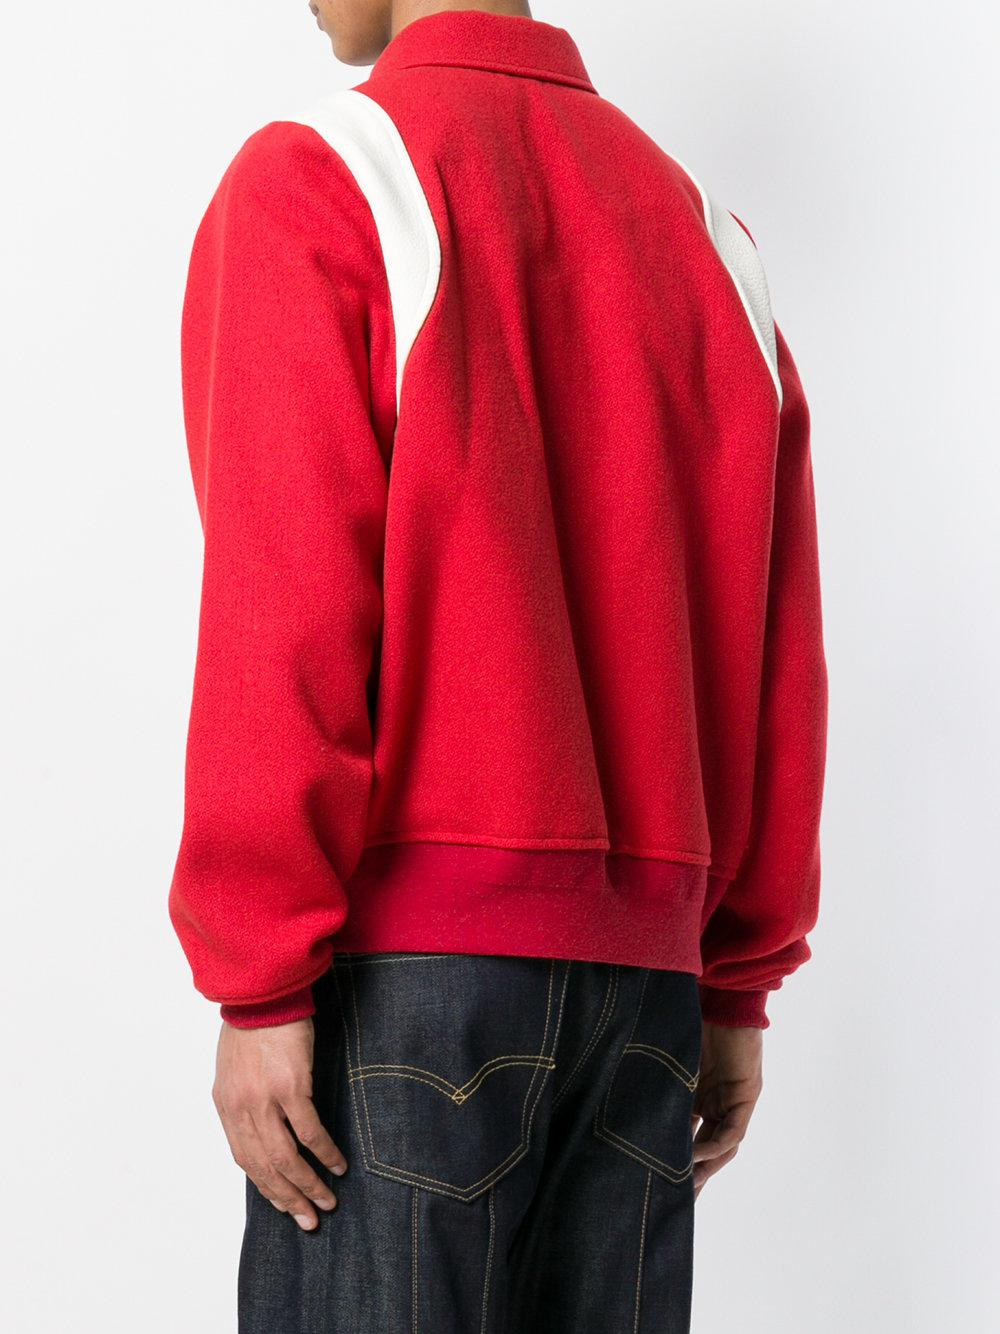 Visvim Wool Zipped Jacket in Red for Men